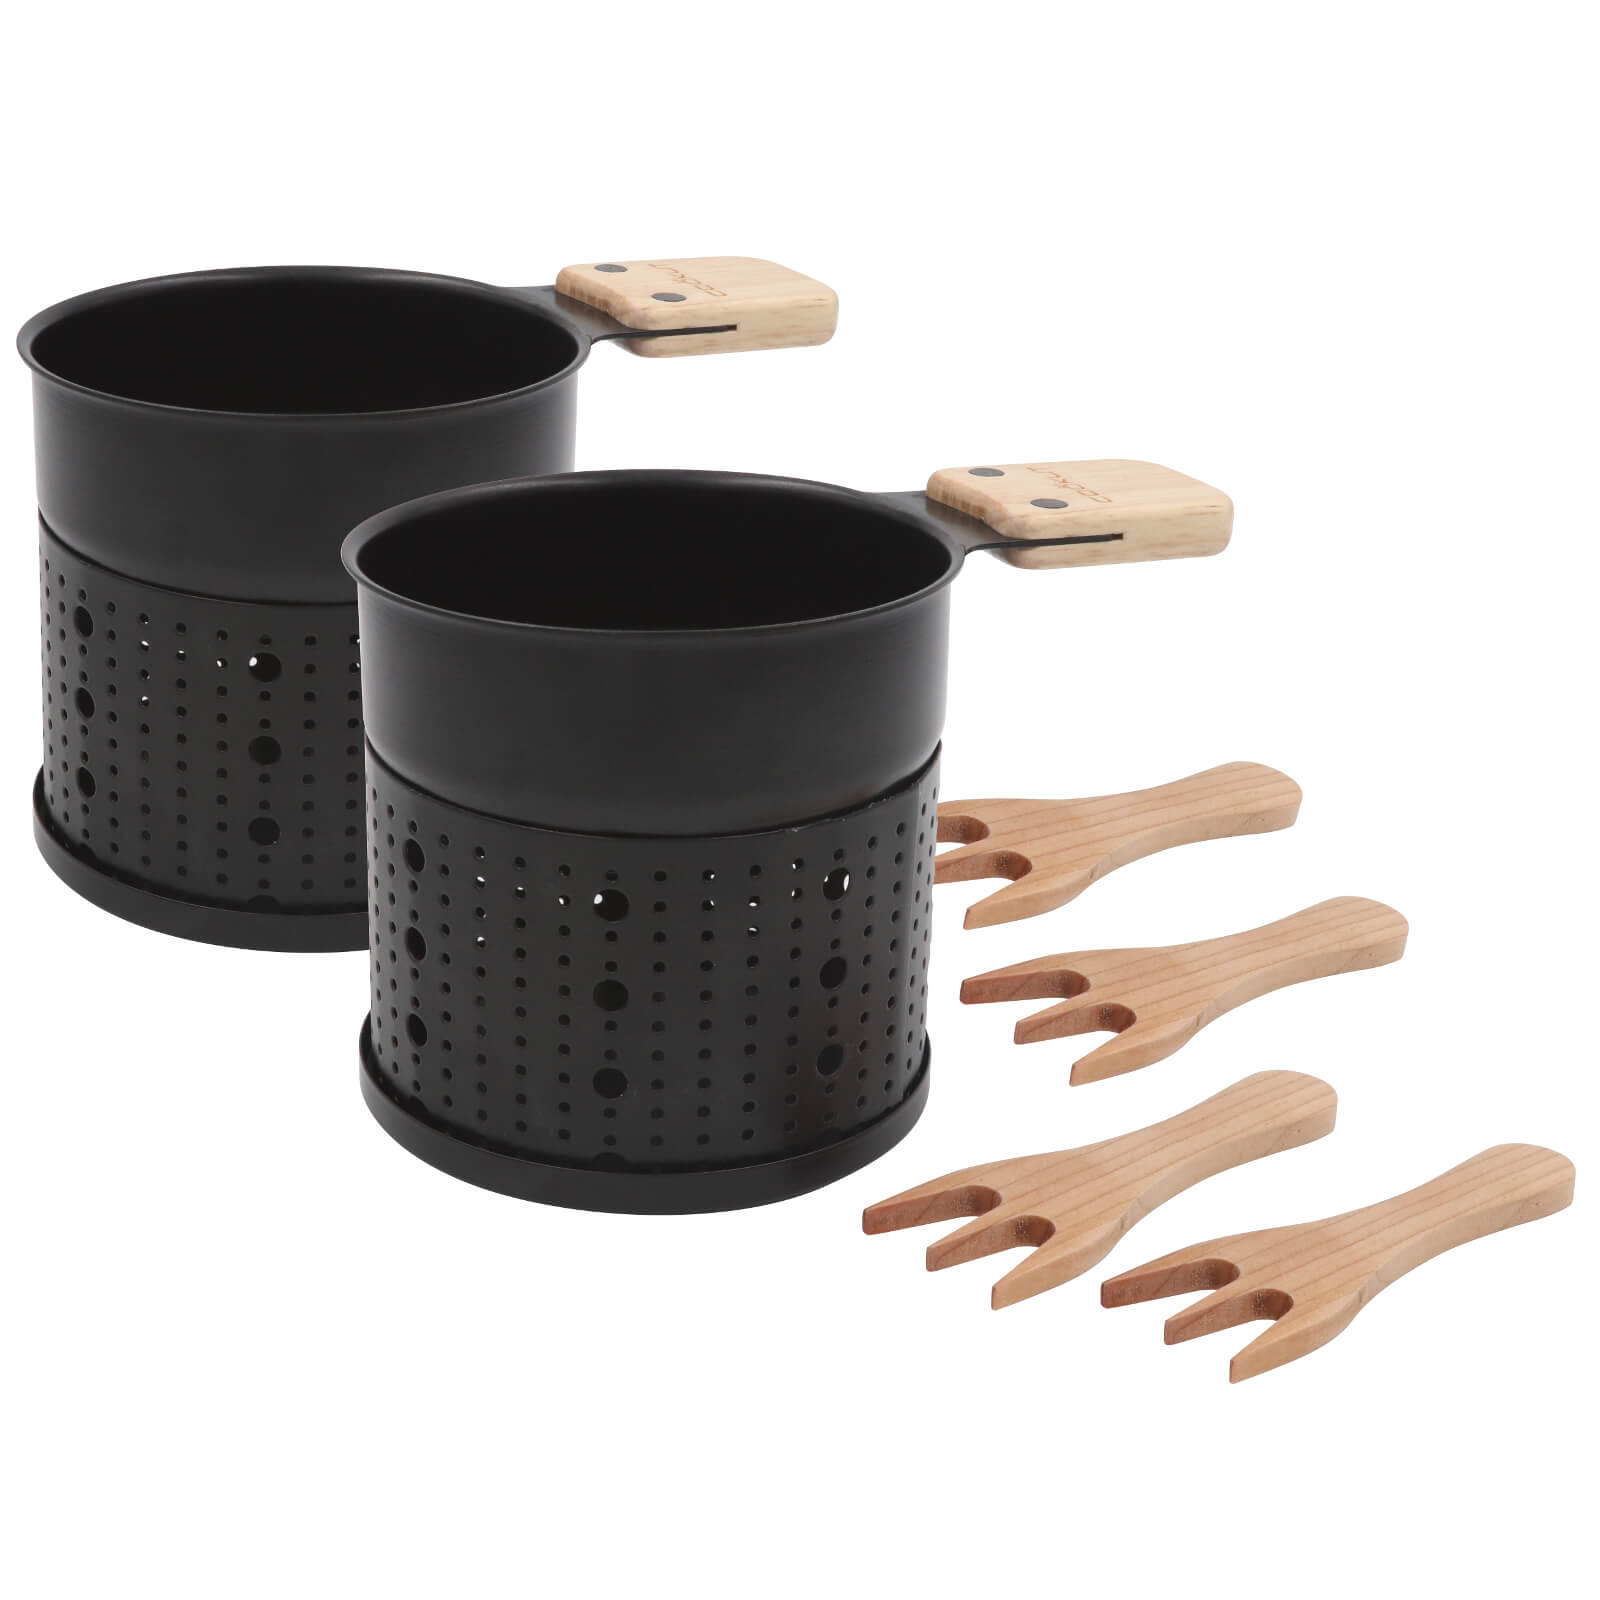 Lumi Choco Chocolate Fondue Set For 4